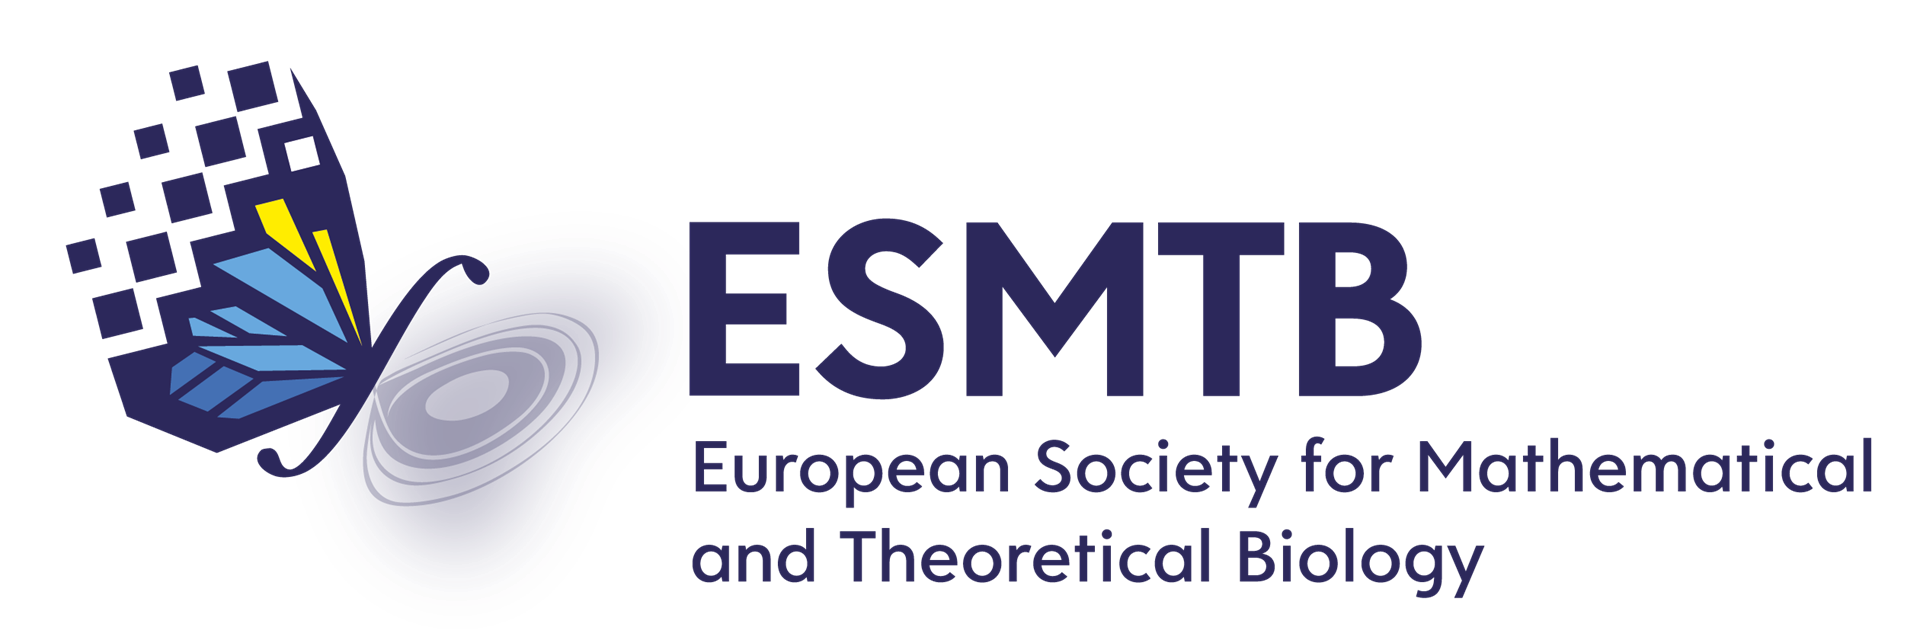 The logo of ESMTB